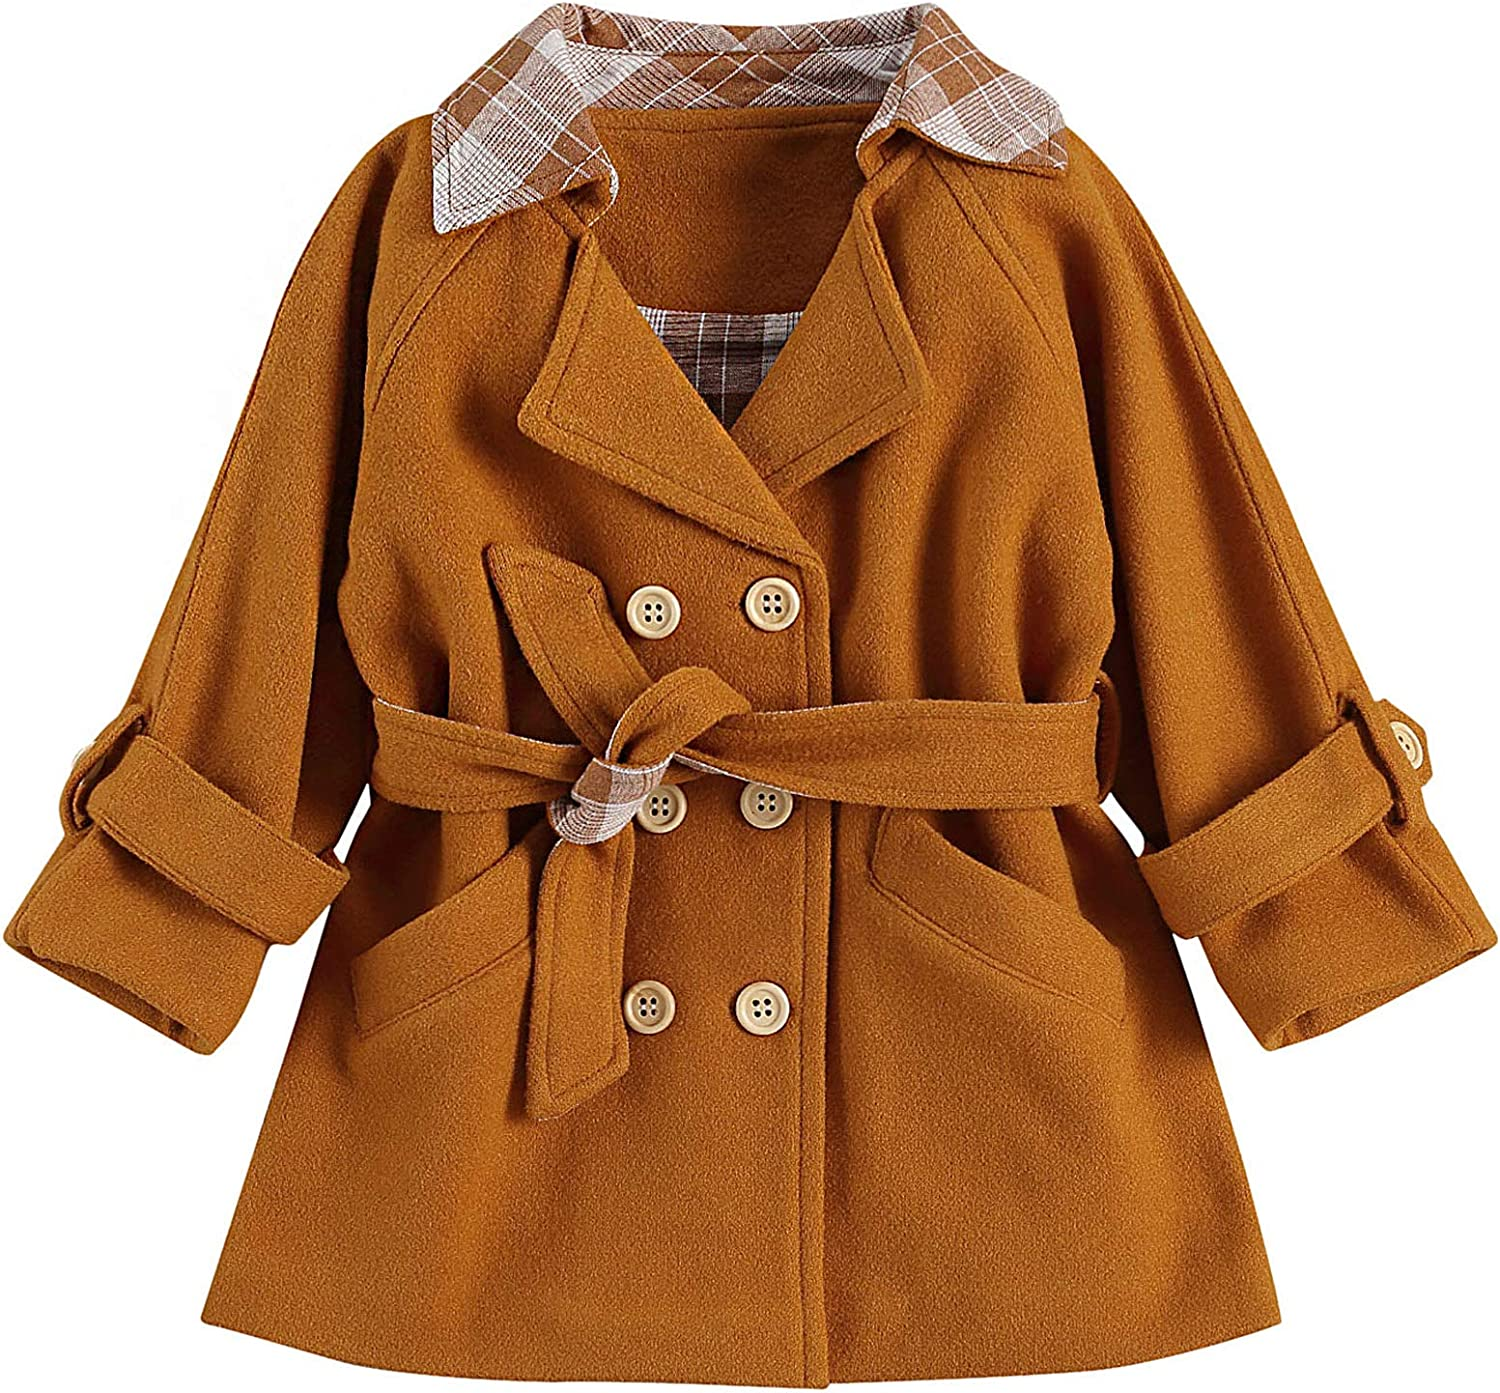 ZAXARRA Toddler Baby Girls Jacket Long Sleeve Trench Coat Denim Outwear Winter Warm Clothes Fall Outfits